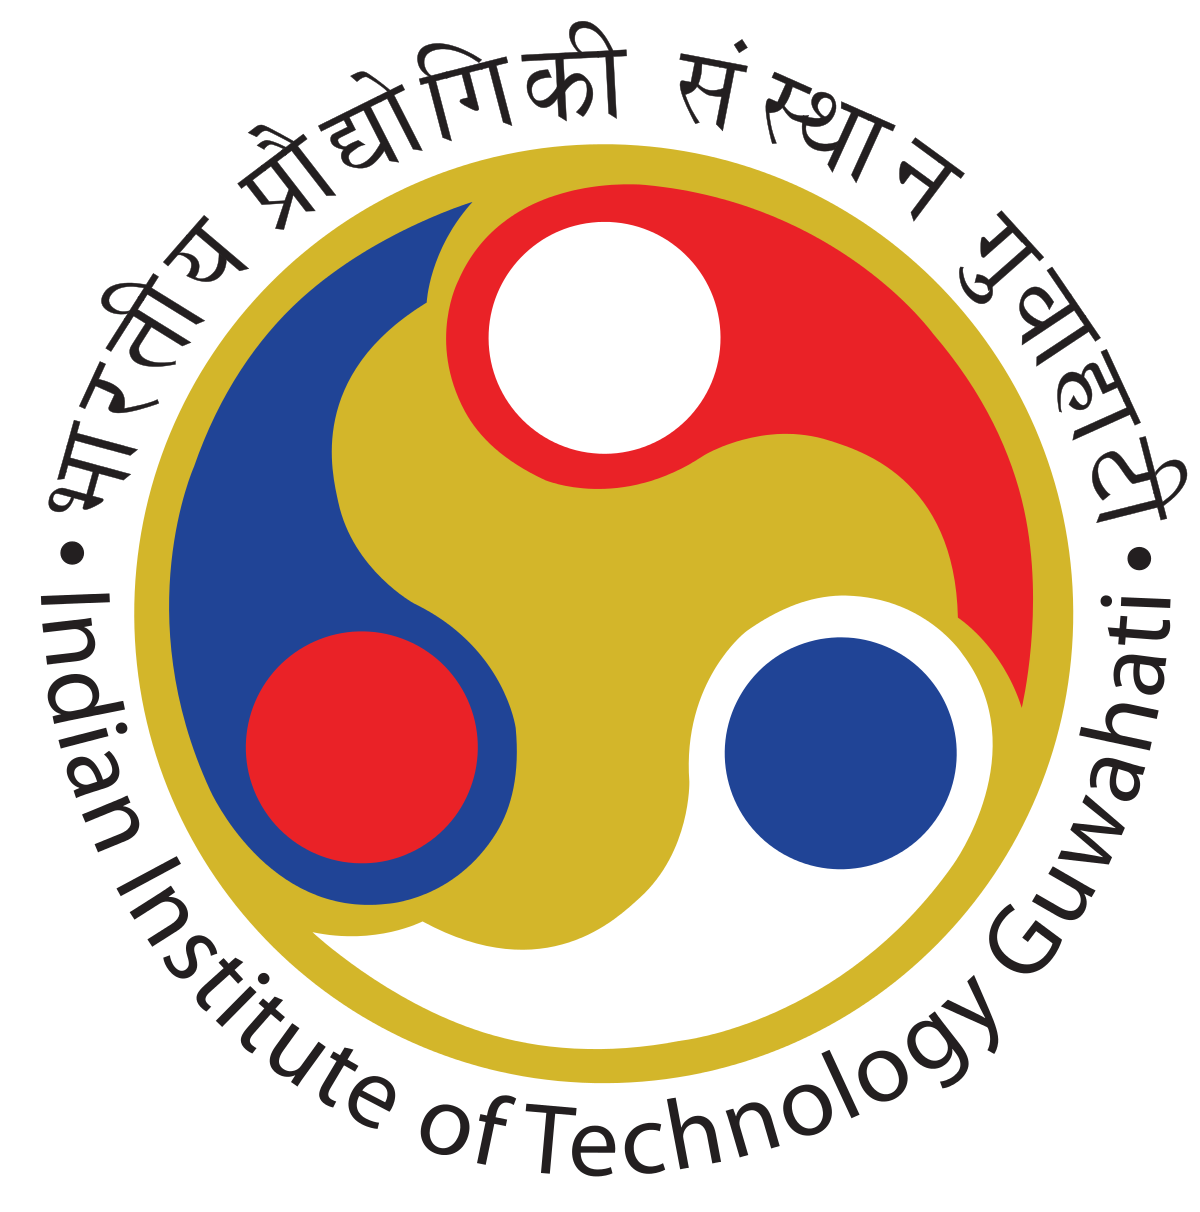 IIT Guwahati Research Conclave 2018